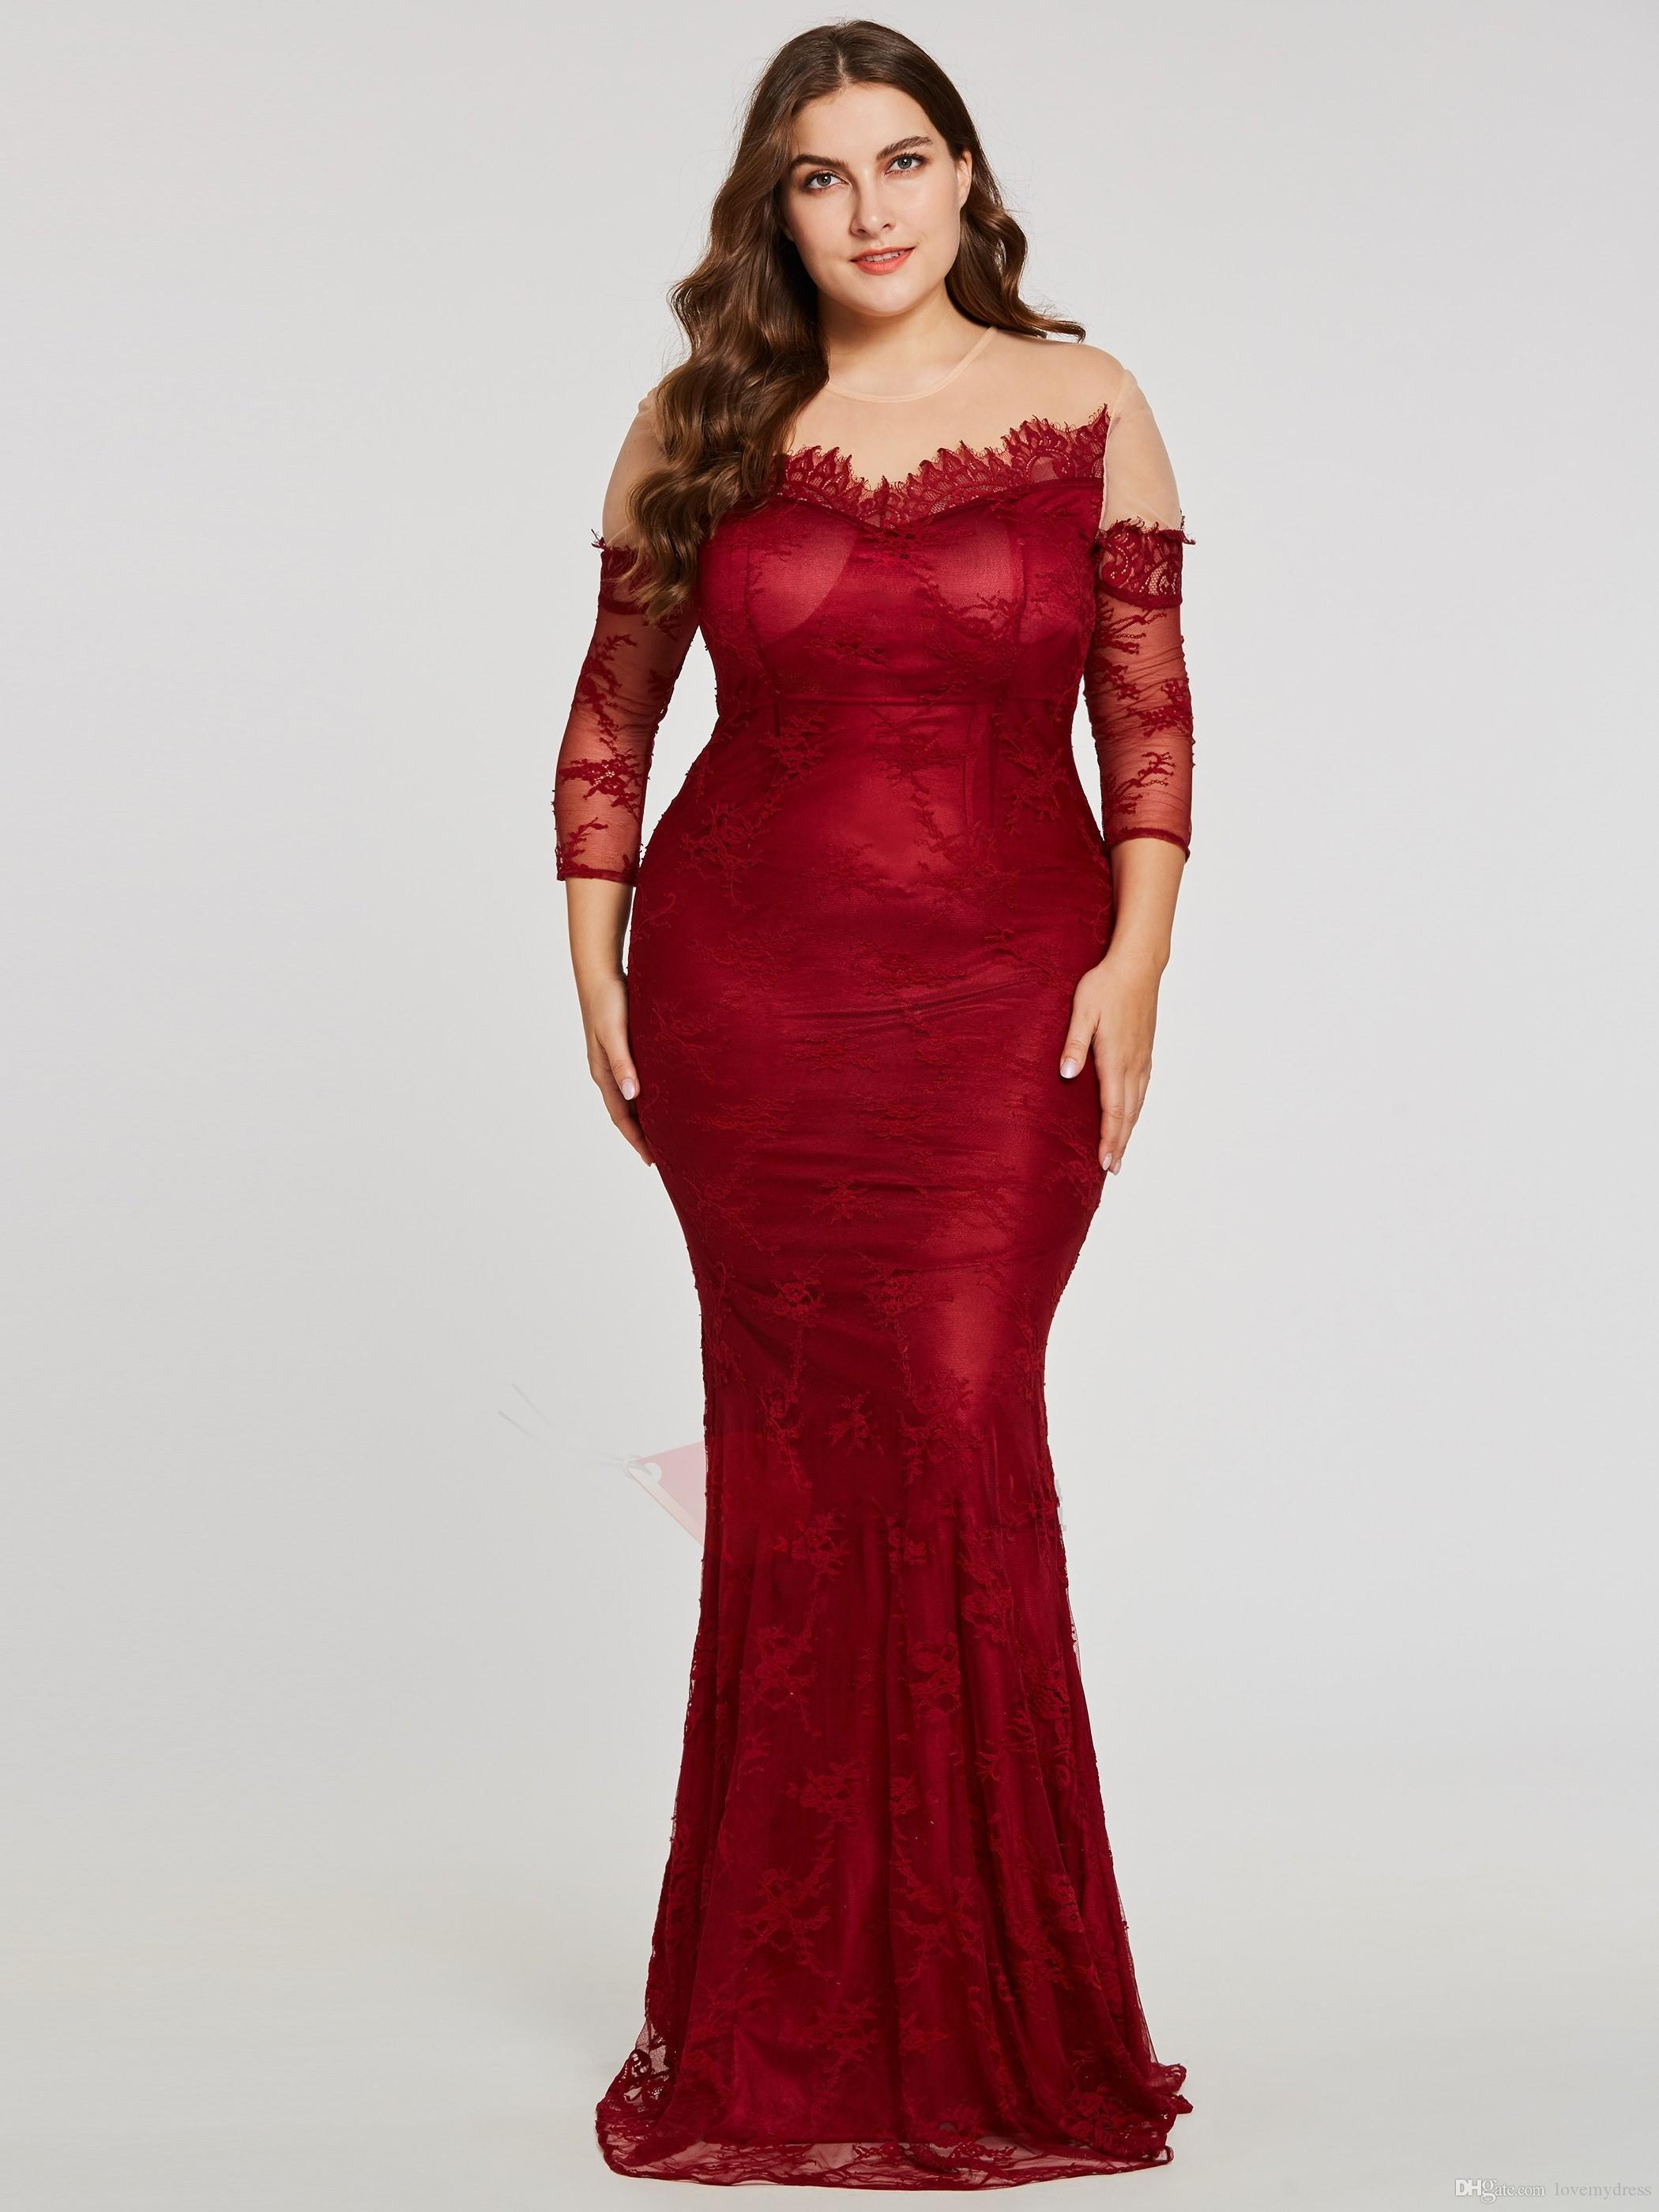 Wine Red Plus Size Special Occasion Dresses For Women Illusion Lace Sleeves  Sheer Neck 2018 Hollow Back Sheath Evening Prom Dress Cheap Maternity  Dresses